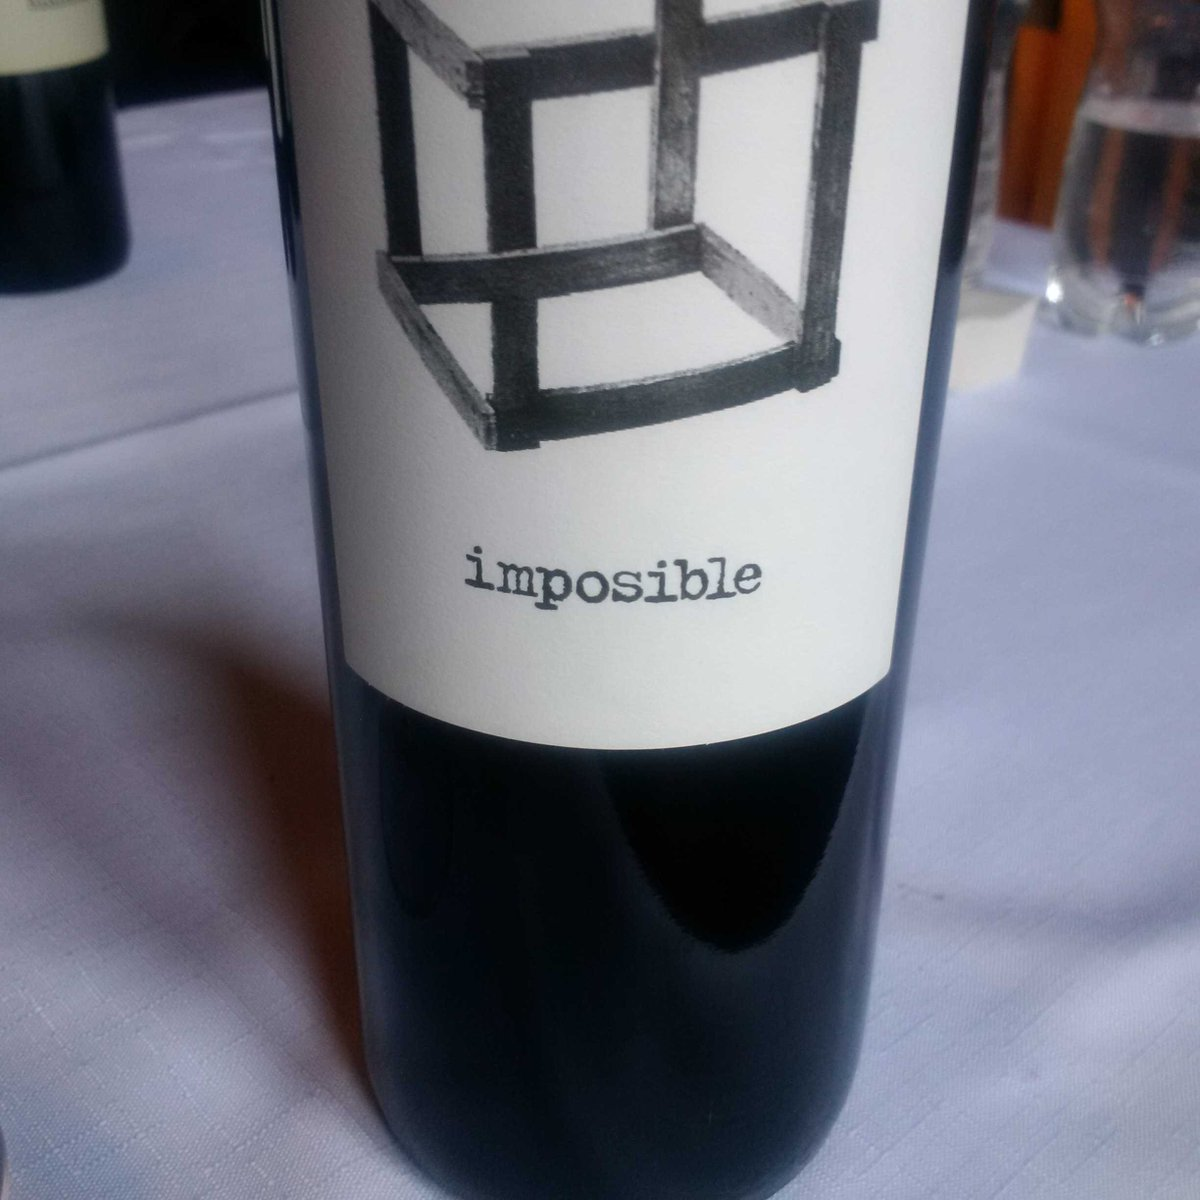 A wine label from Mendoza tasting today in Argentina #greatwineandes http://t.co/lZ1XwYNaut